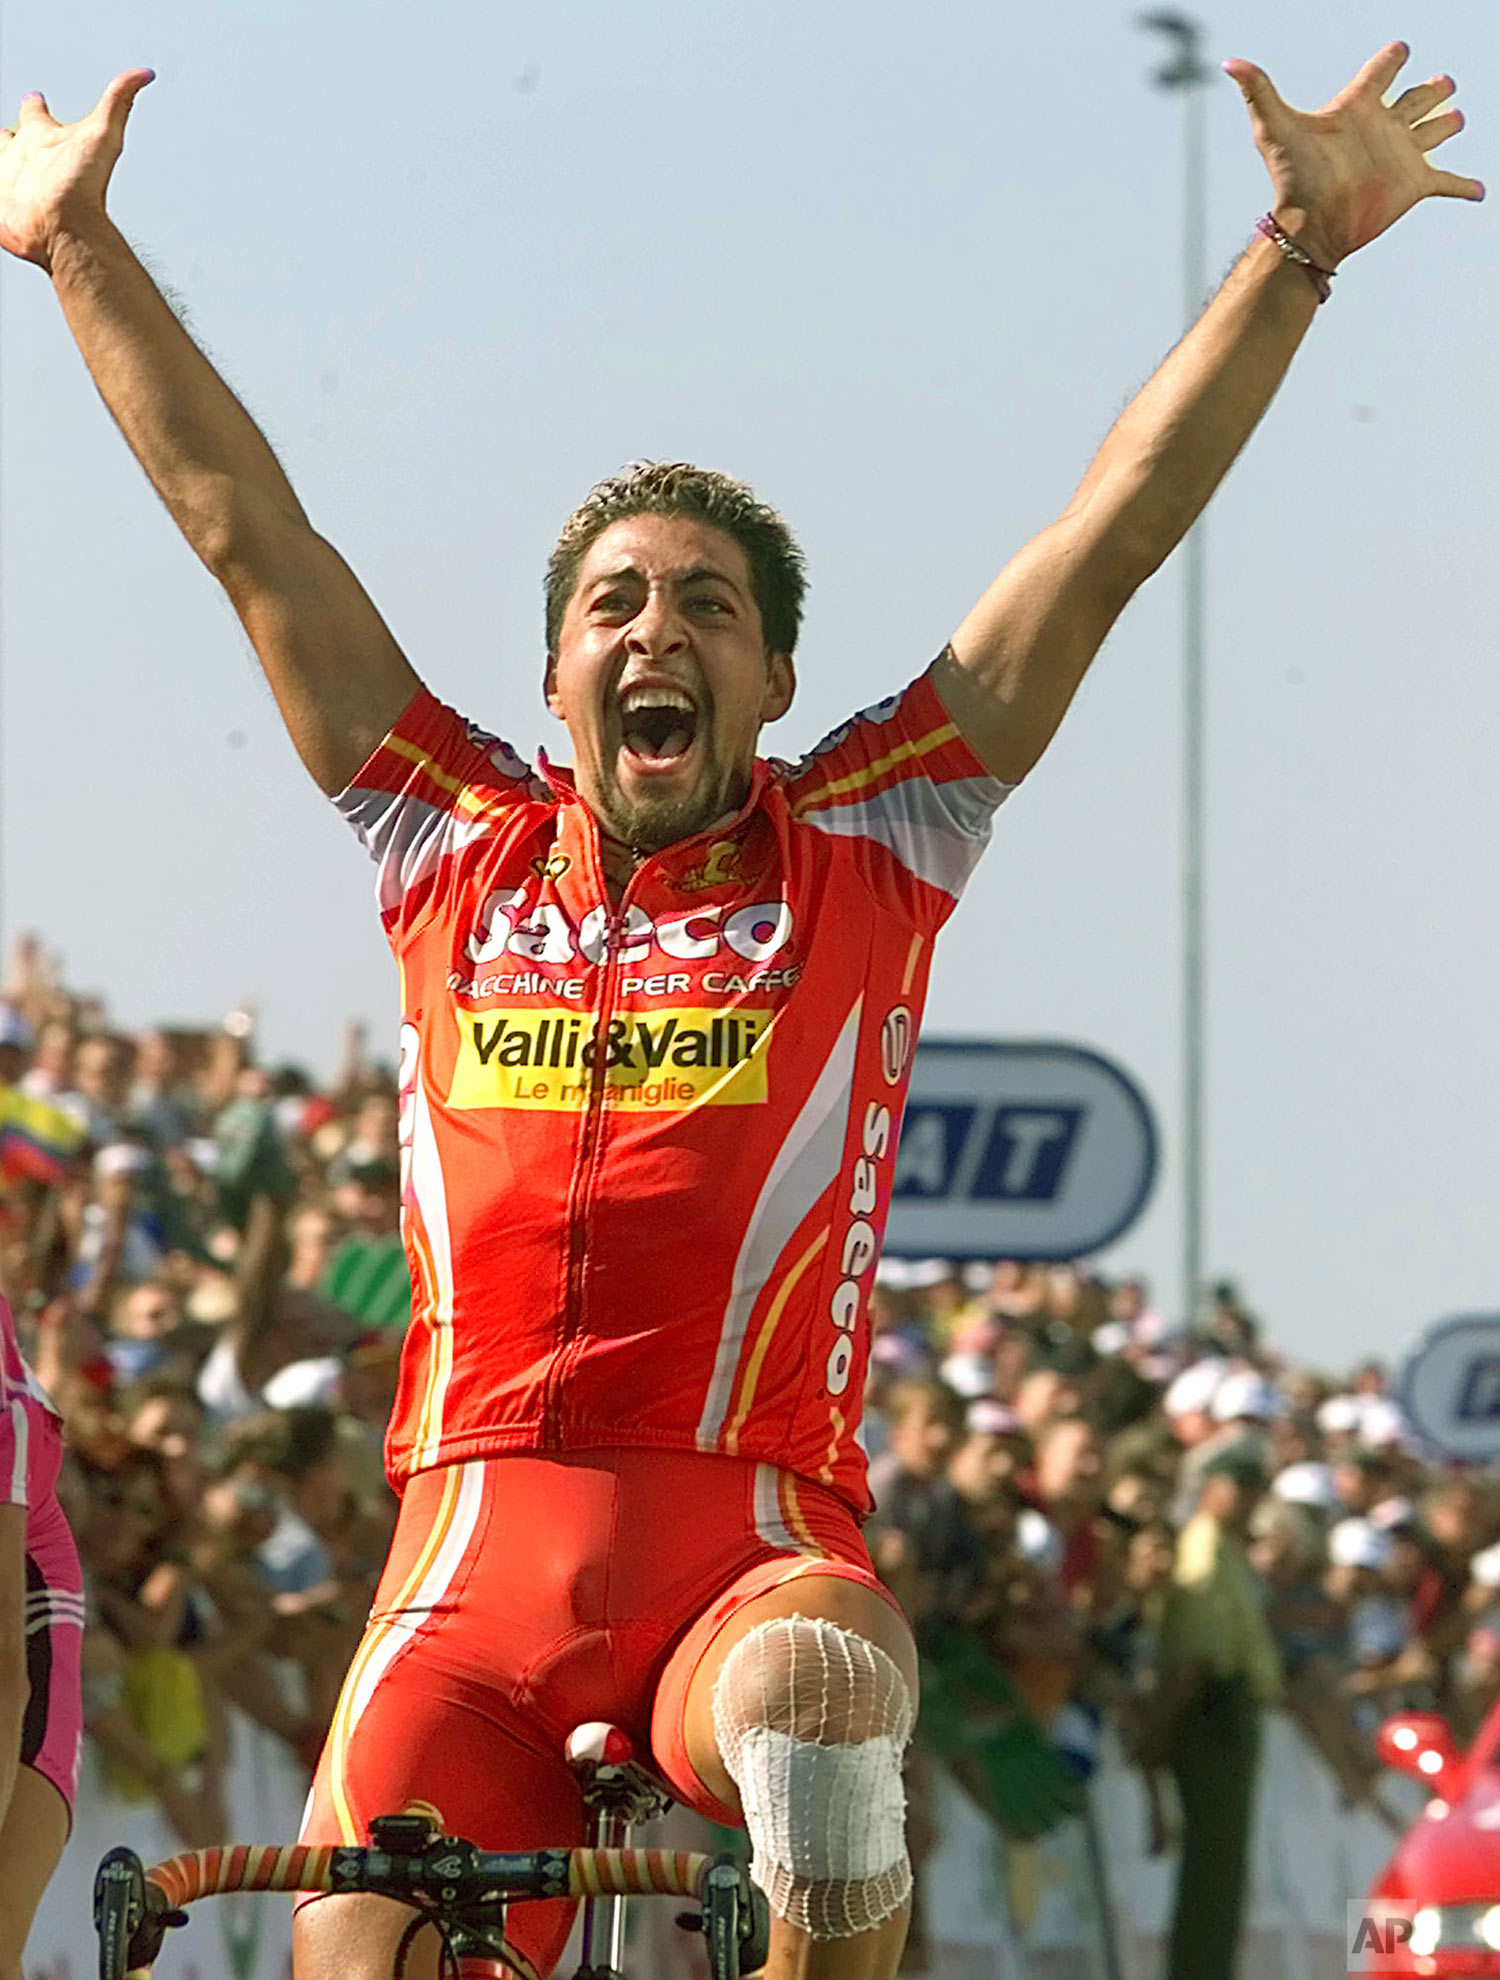 Salvatore Commesso of Italy reacts as he crosses the finish line to win the 18th stage of the Tour de France cycling race between Lausanne, Switzerland, and Freiburg, Germany, Thursday, July 20, 2000. (AP Photo/Laurent Rebours)